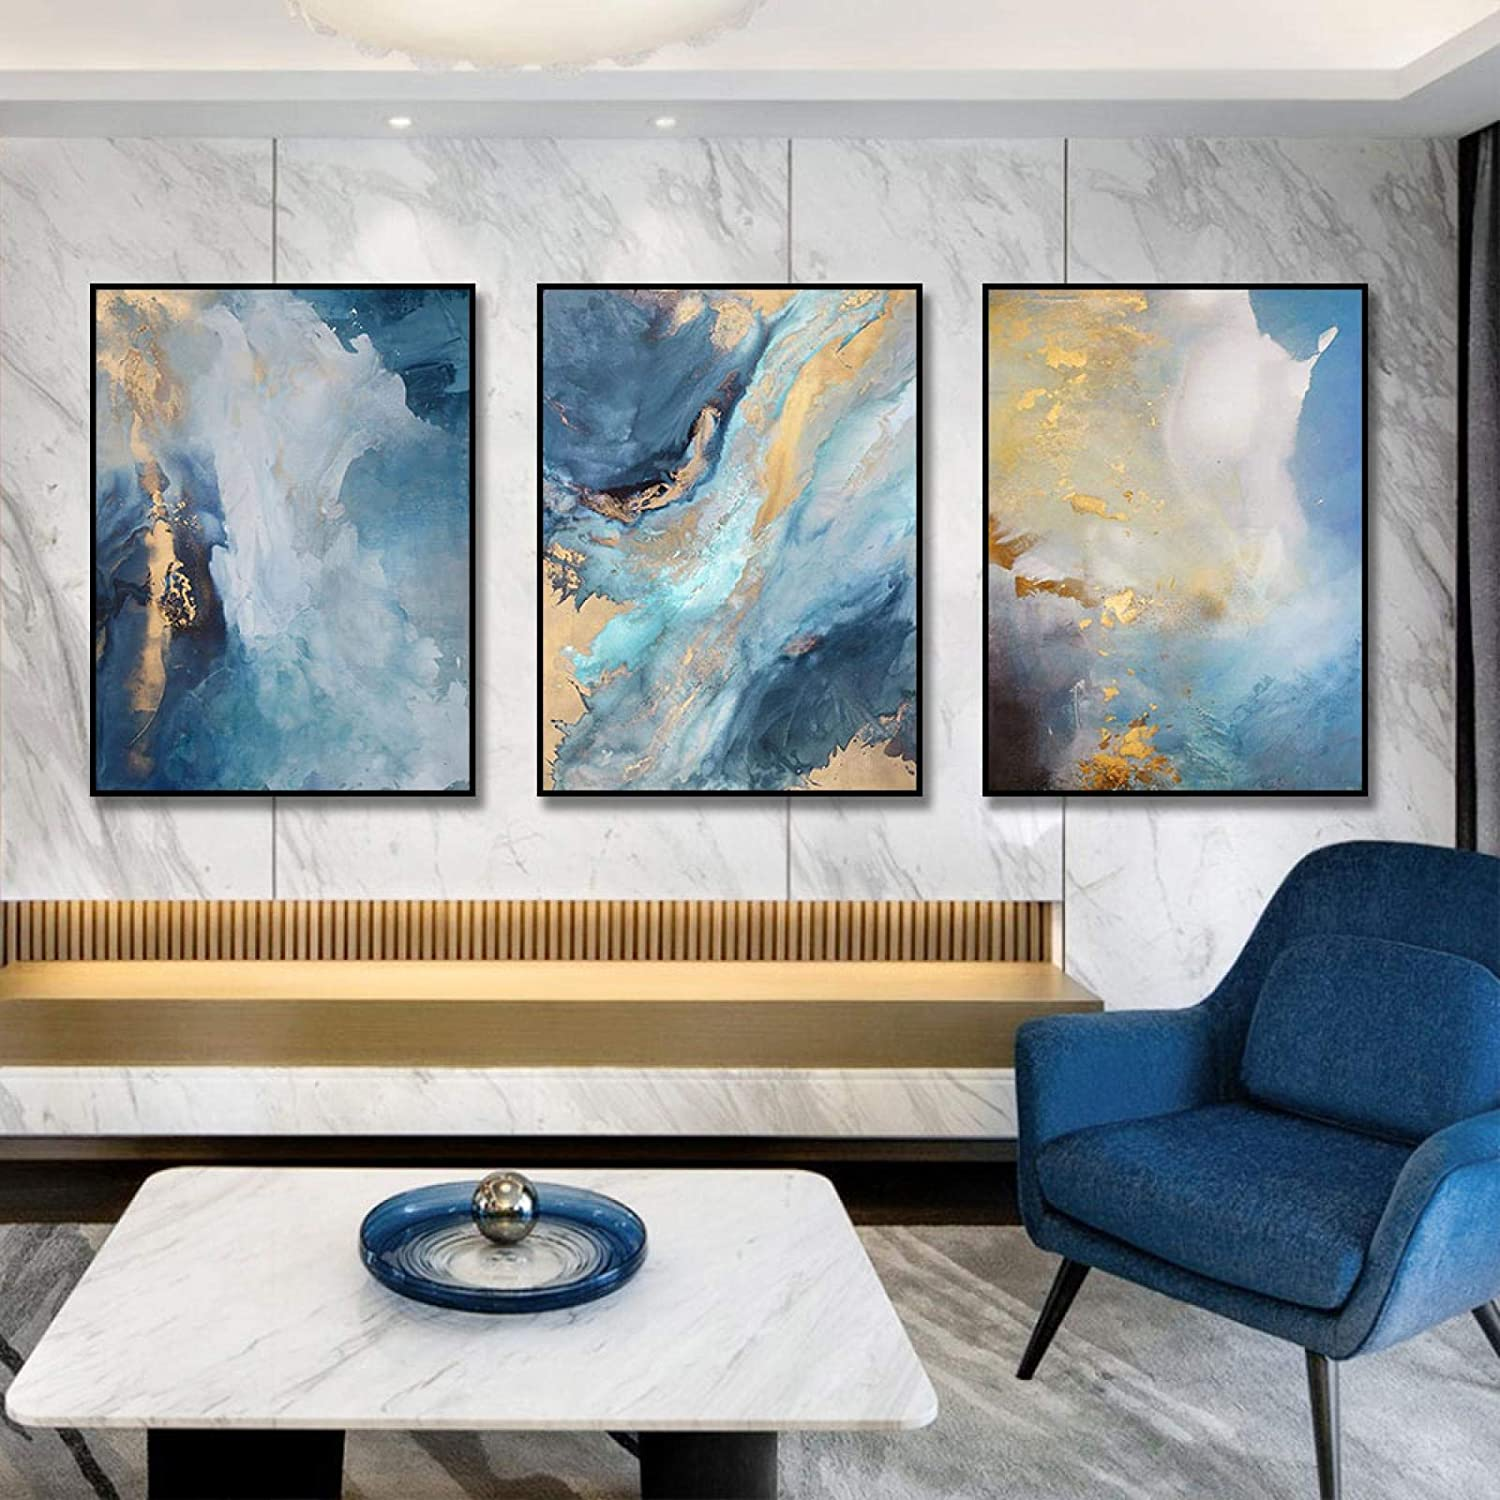 Abstract Combination Manufacturer direct delivery Canvas Painting Print Gold Super sale period limited Paintings